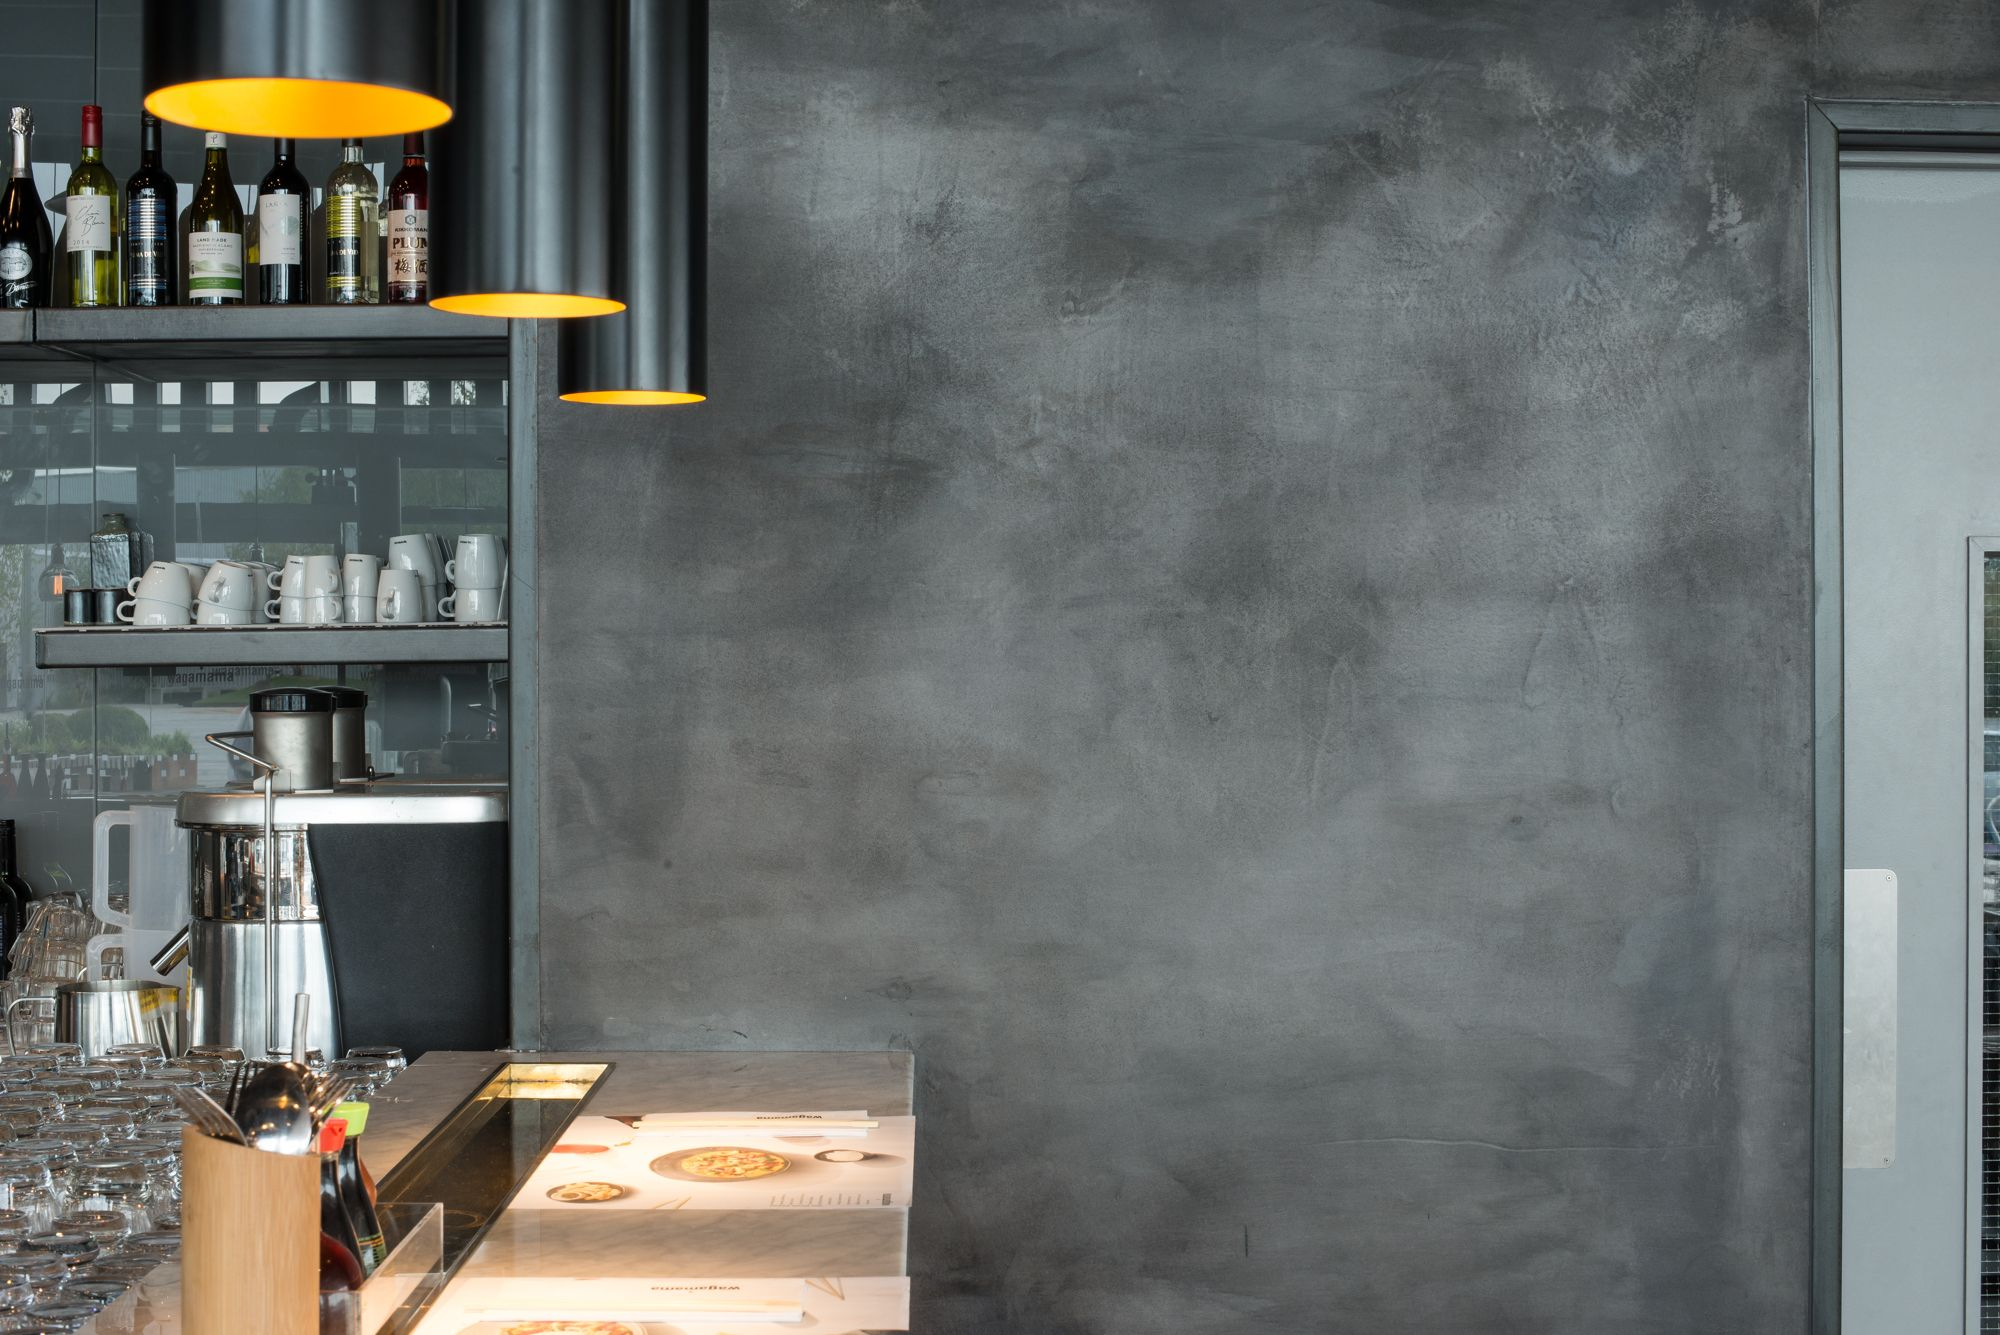 Naturally pigmented clay plasters create stunning black walls that